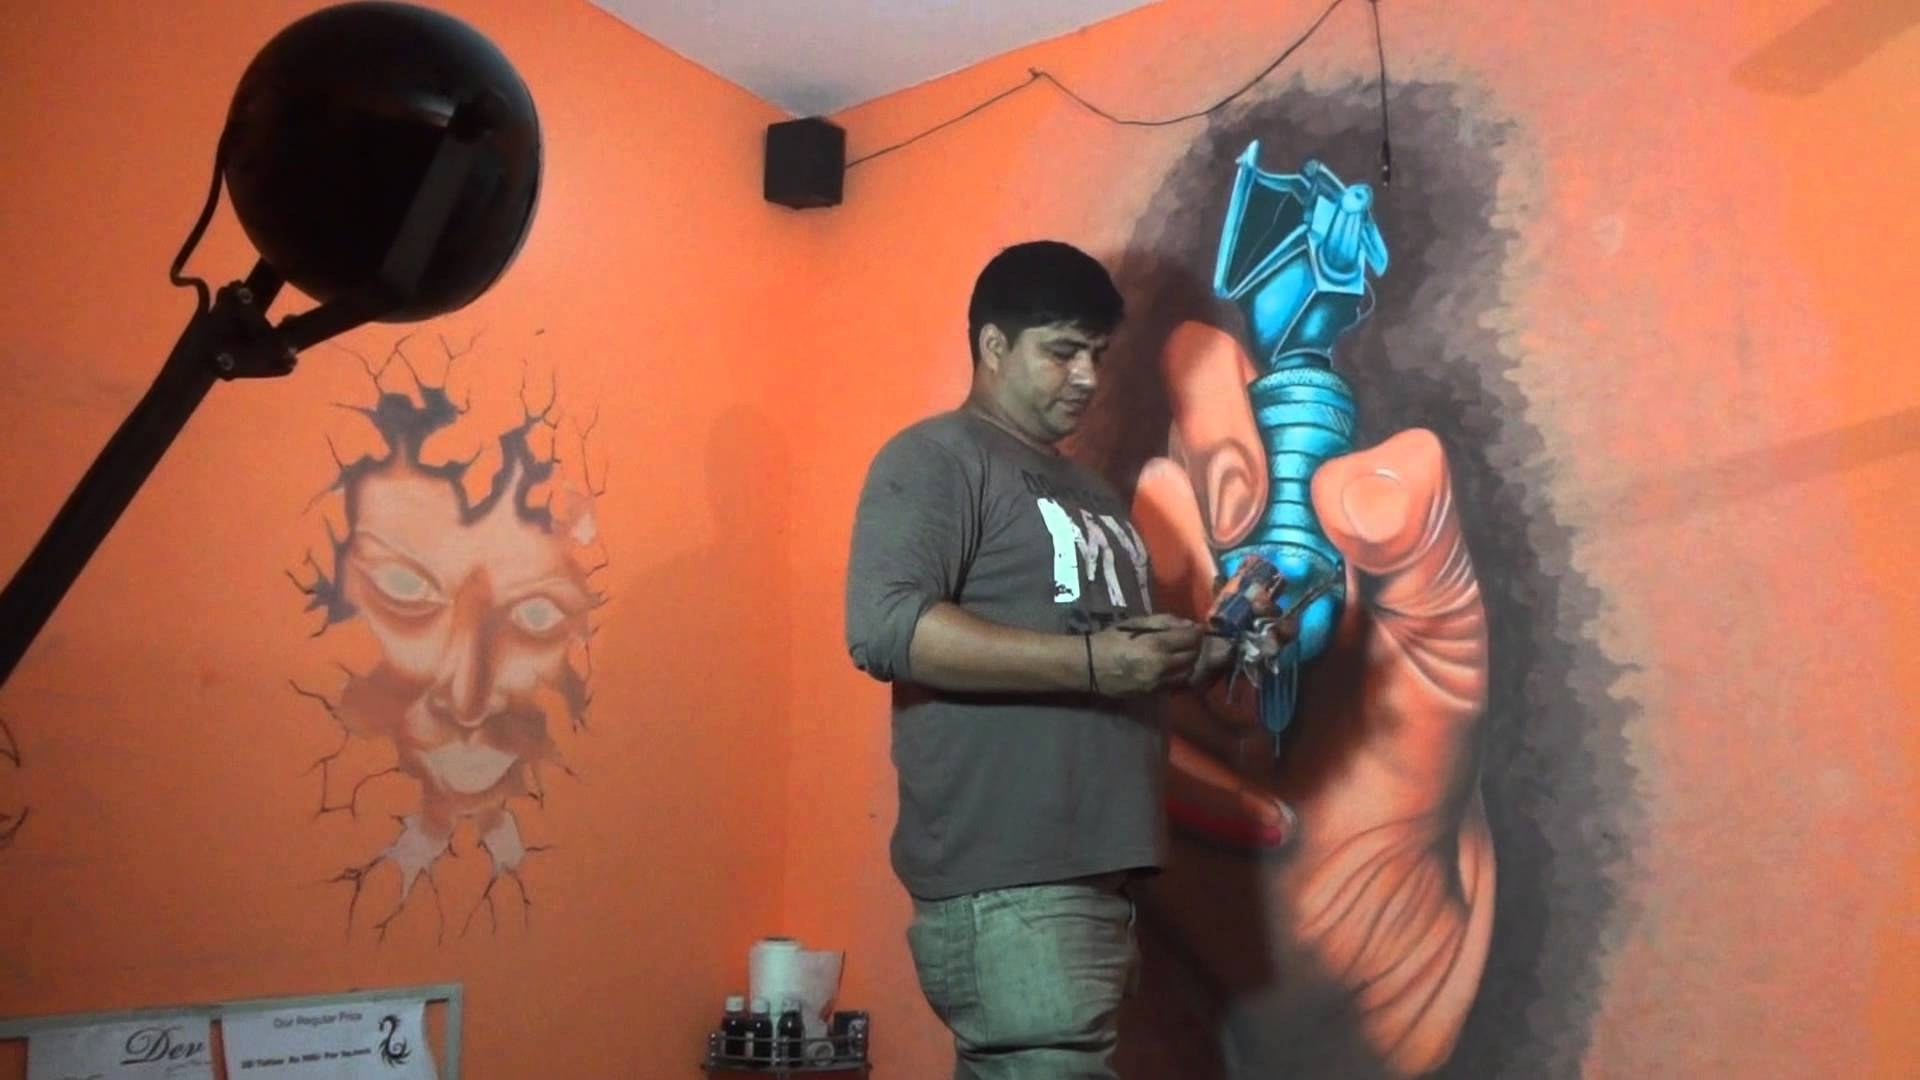 Tattoo Shop Wall Artdev 9313666999 – Youtube Pertaining To Most Up To Date Tattoos Wall Art (View 3 of 20)